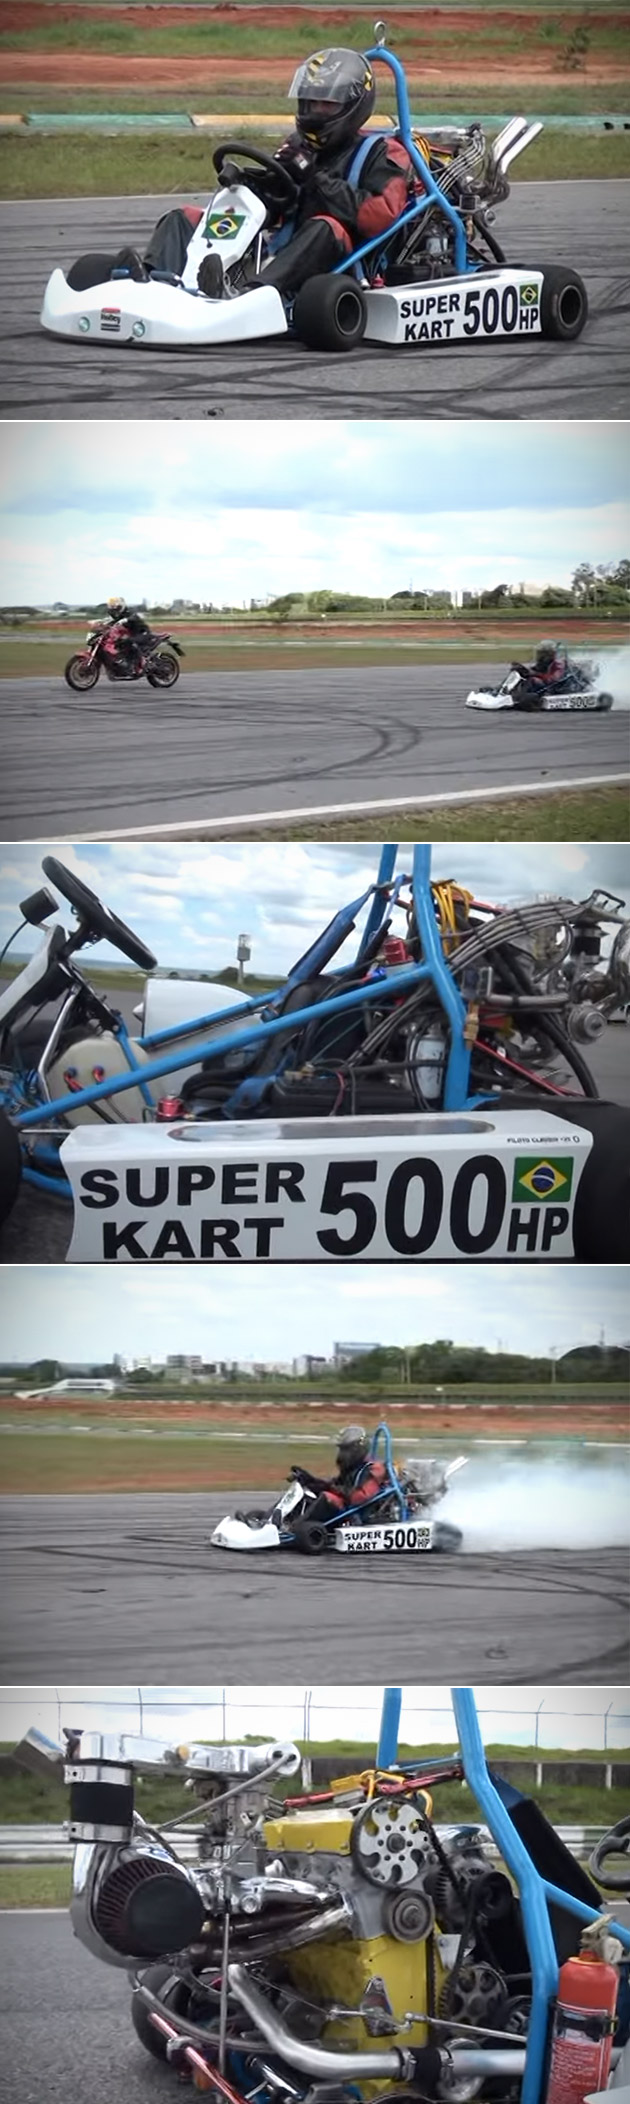 500HP Turbocharged Super Kart Go-Kart